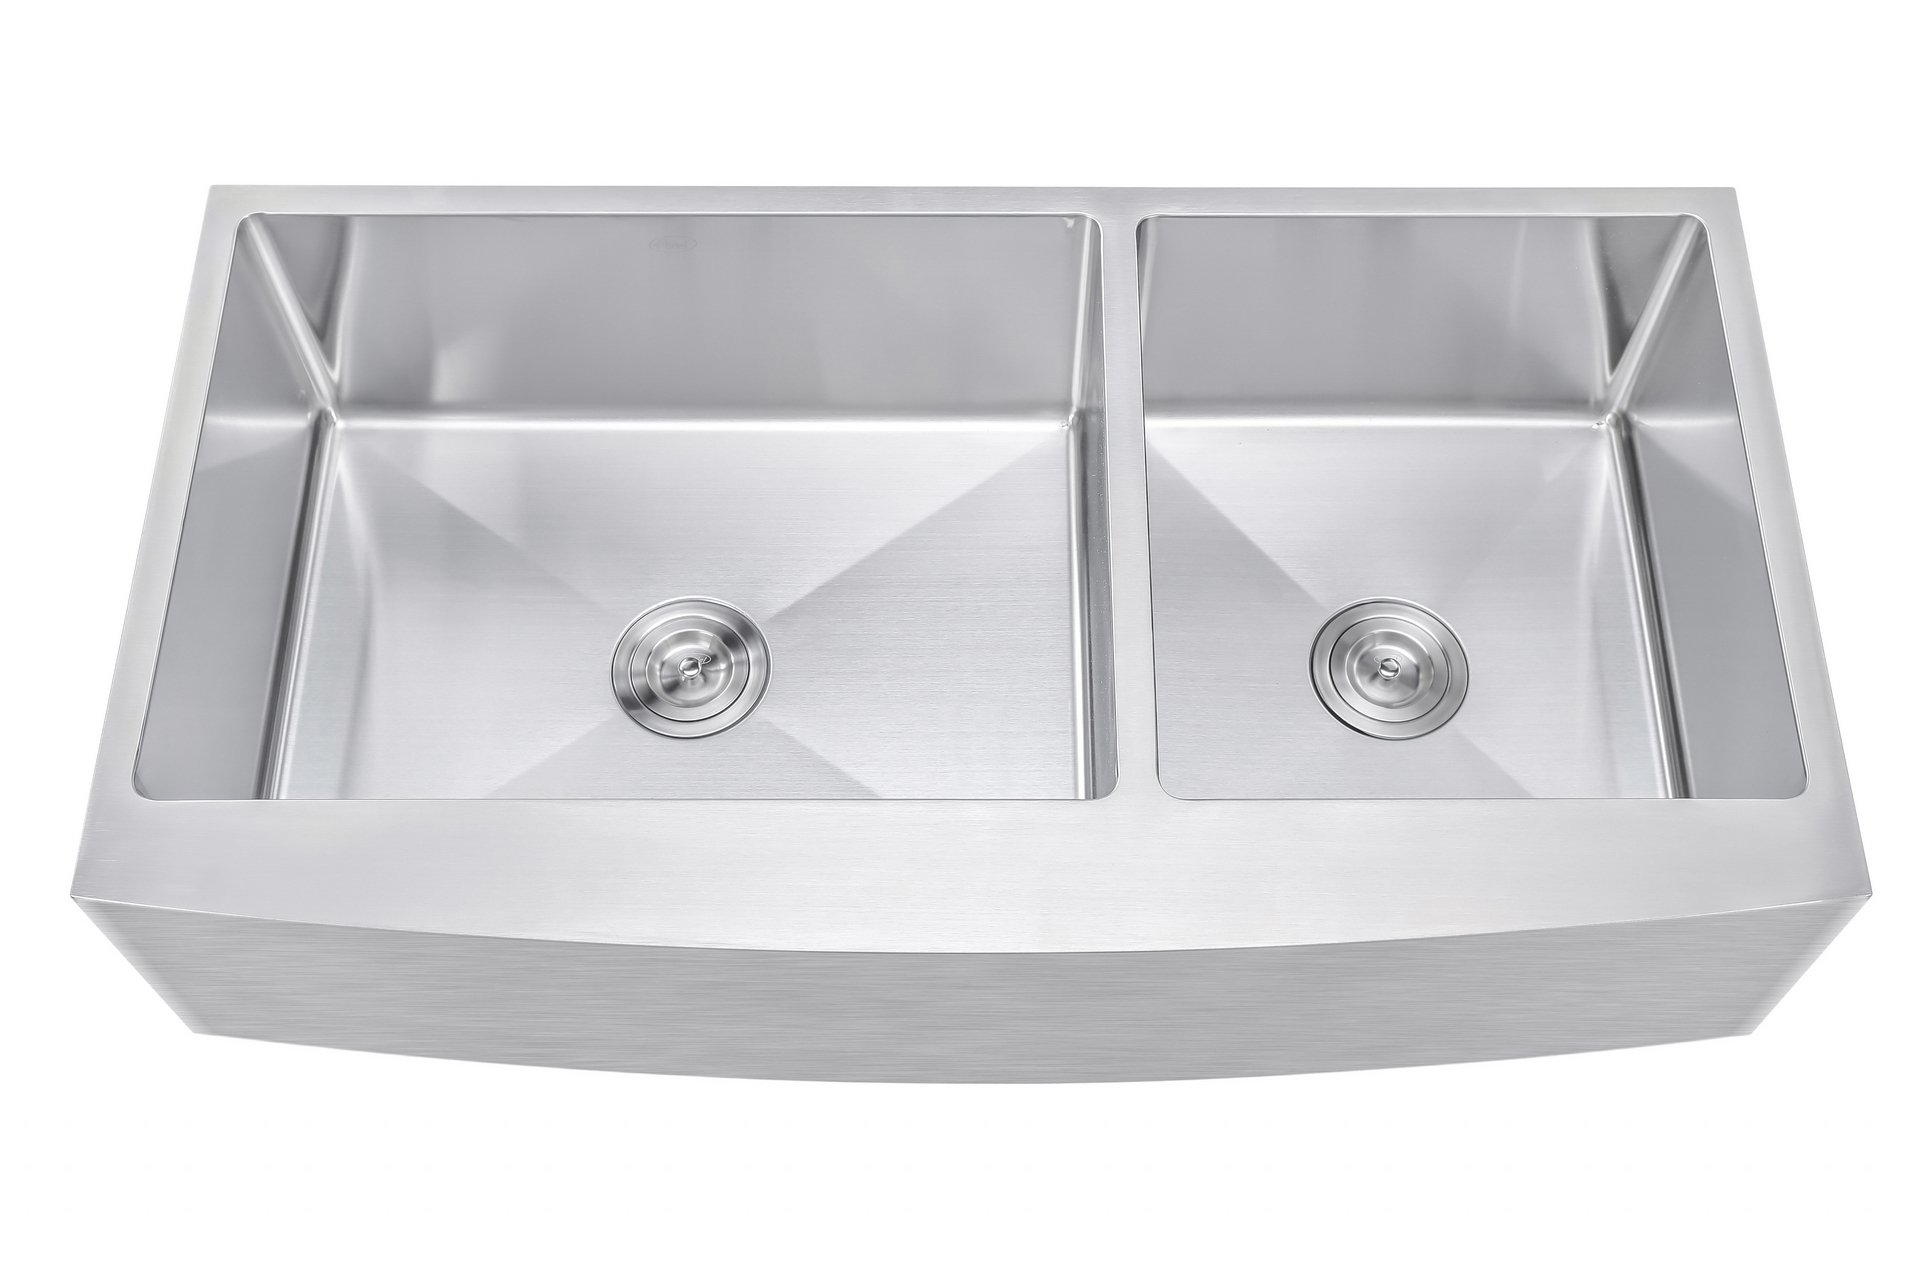 42 Inch 60/40 Offset Double Bowl Farmhouse Apron Front Stainless Steel Kitchen Sink - 15mm Radius Coved Corners